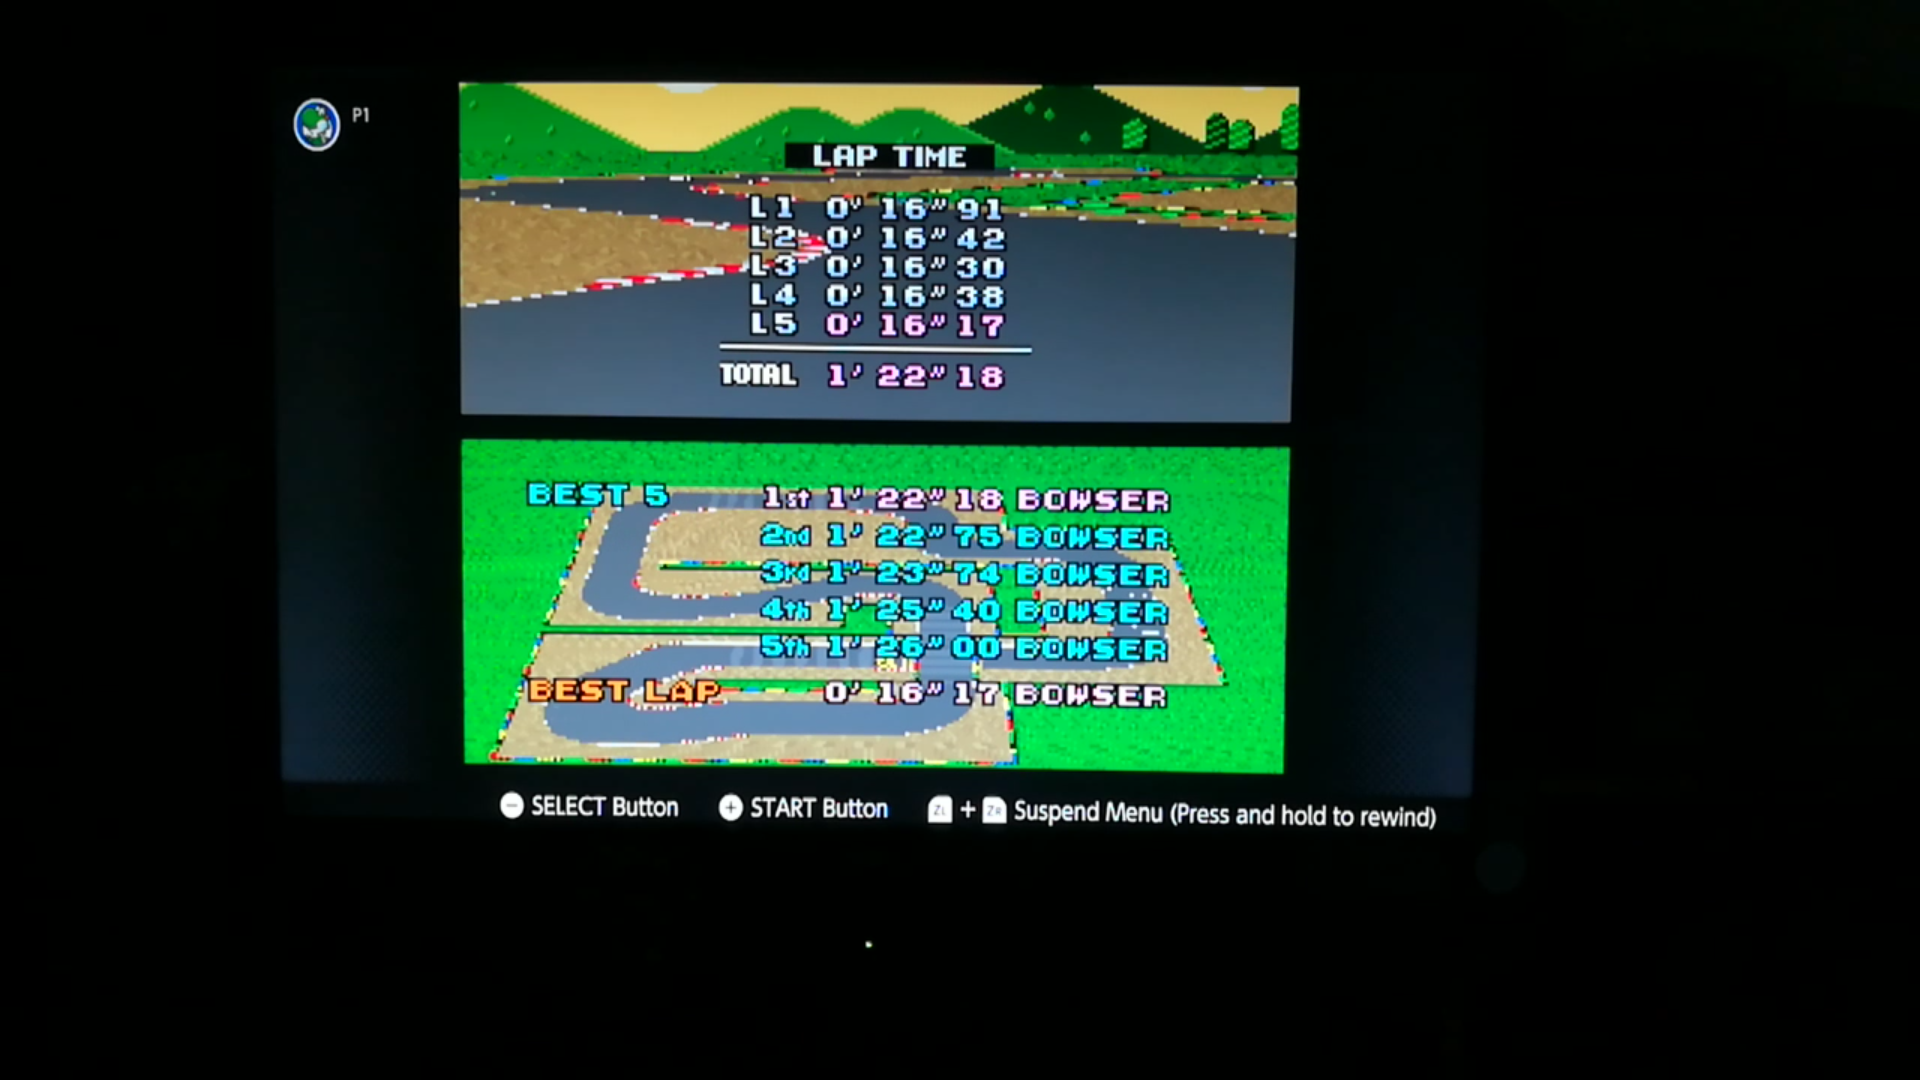 Super Mario Kart: Mario Circuit 2 [Time Trial] time of 0:01:22.18